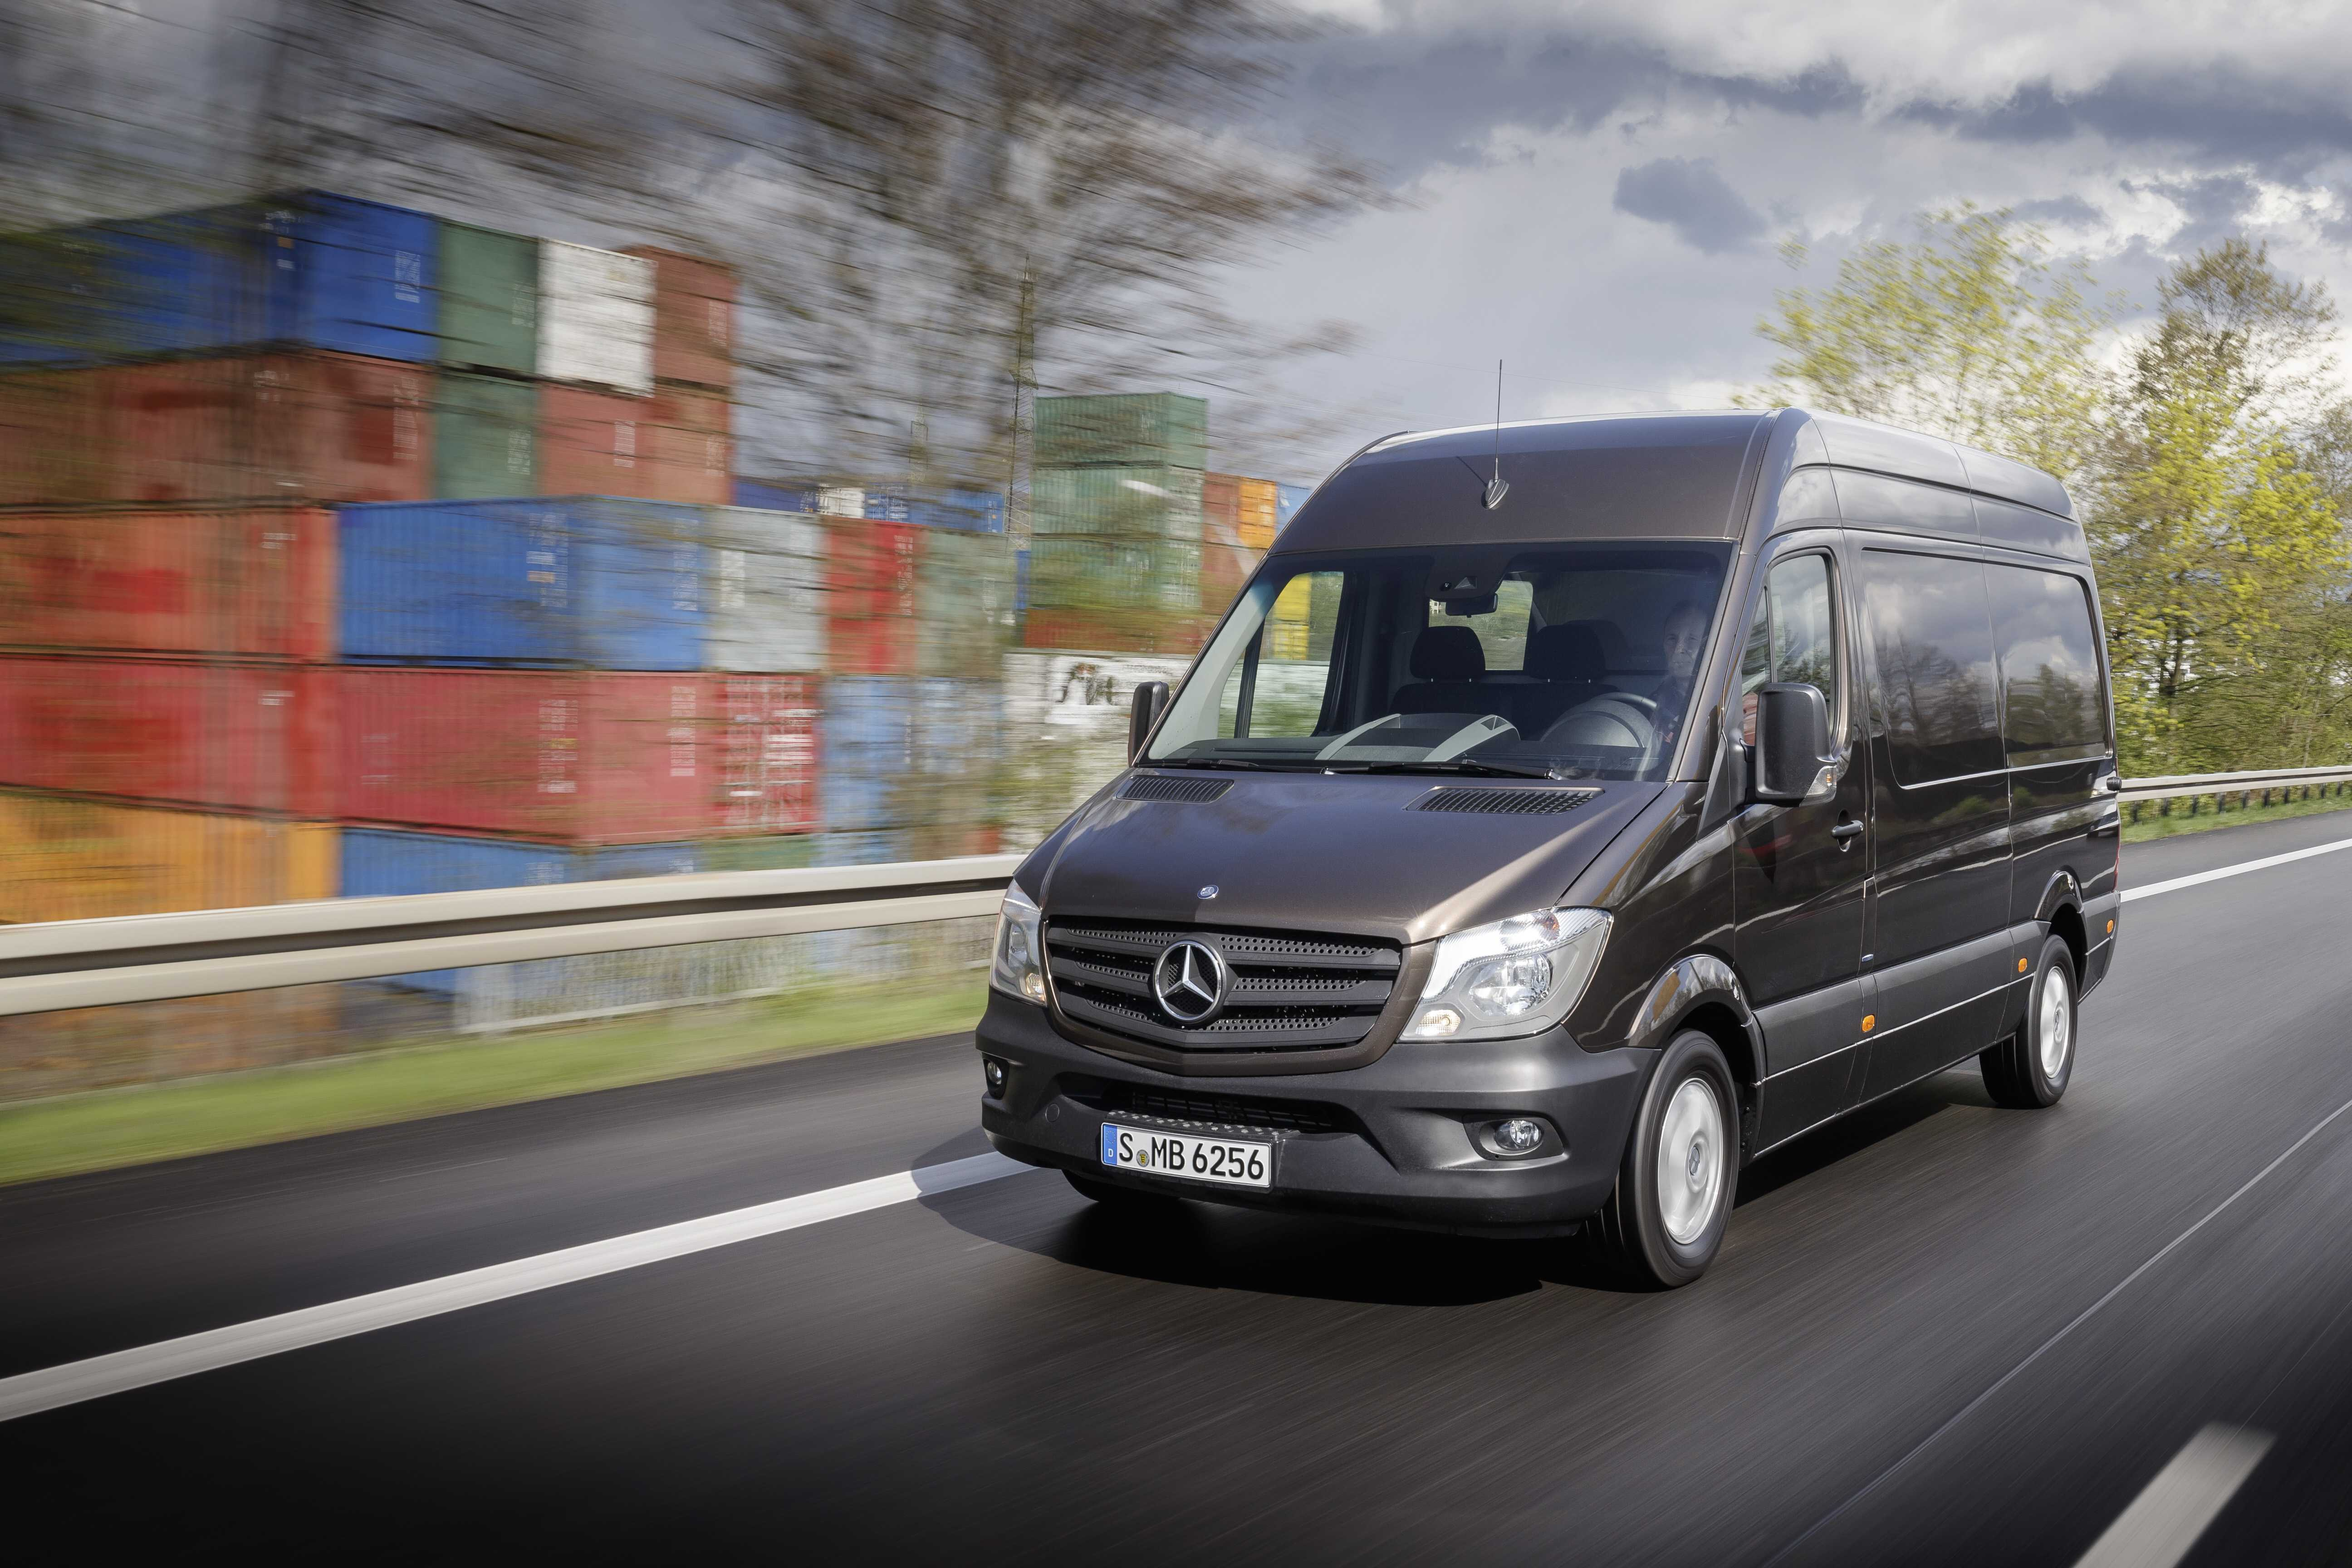 limo minibus benz leasing mid cinemacar sprinter west mercedes inventory